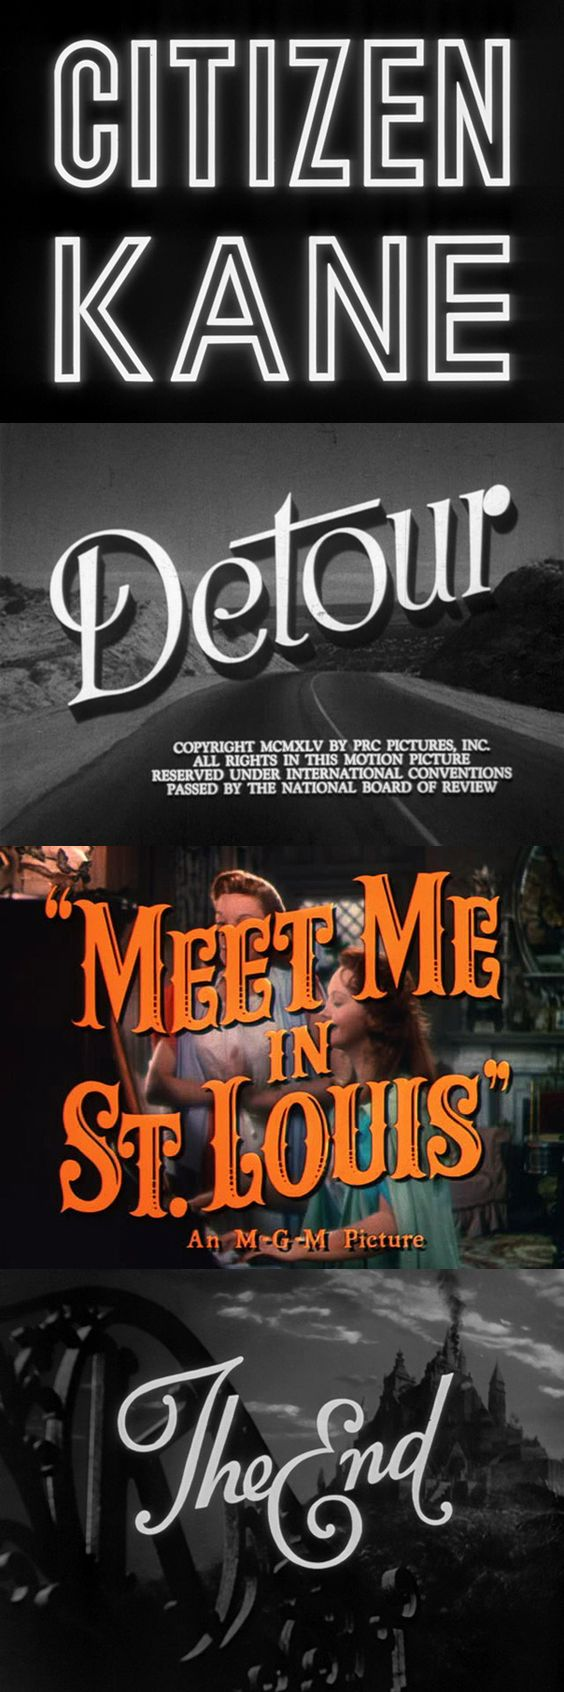 A site full of movie title stills is like a candy store for vintage and film lovers alike.